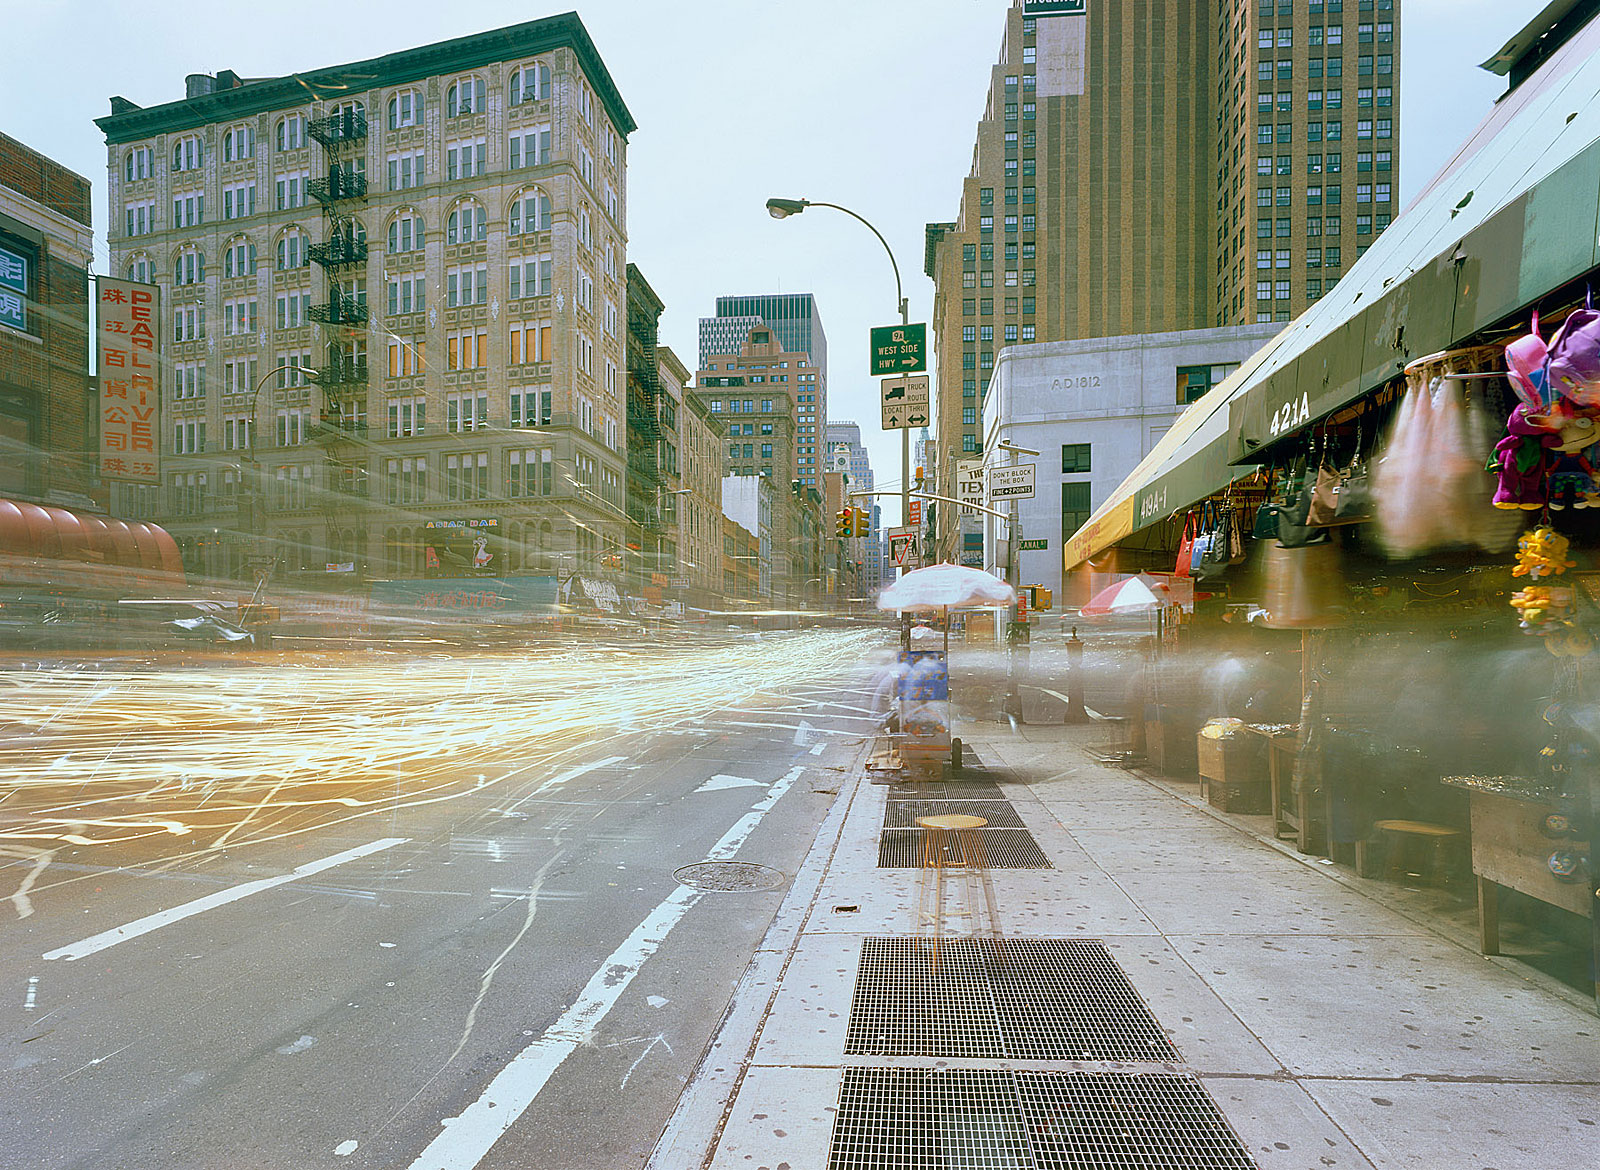 Broadway and Canal Street, New York (16.33 - 17.33 Uhr, 24.6.1998)